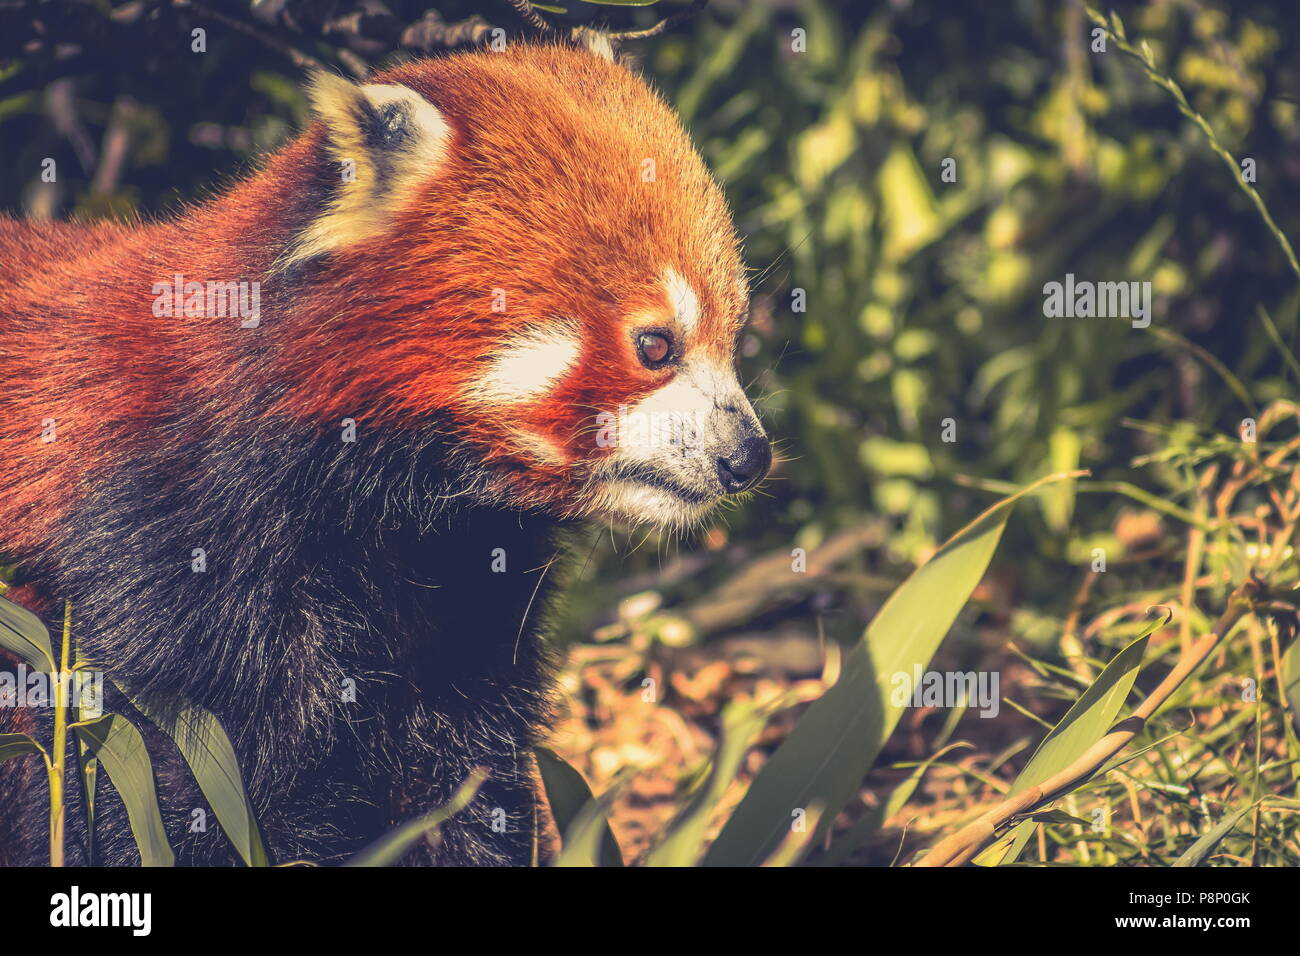 Close up image of a Red Panda (Ailurus fulgens) with copy space - Stock Image